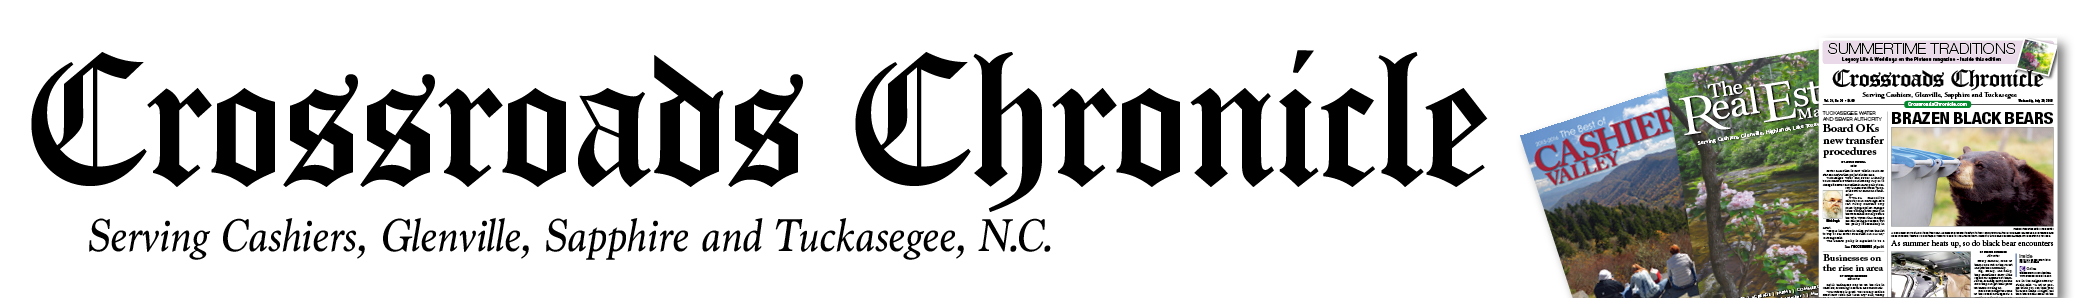 Crossroads Chronicle, Cashiers, North Carolina Home